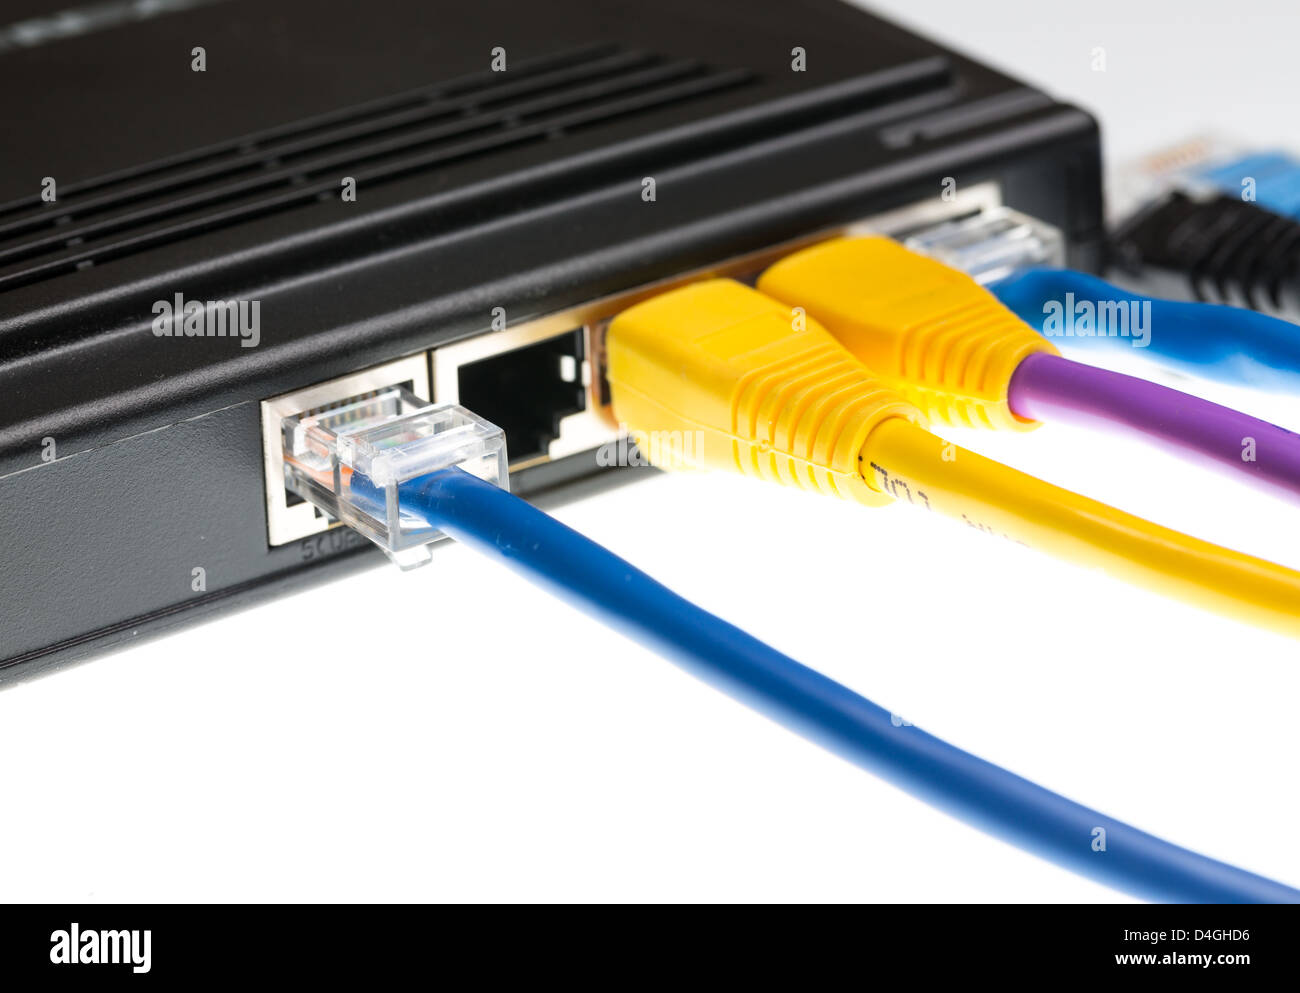 Câbles d'ordinateur PC connecté à internet - des câbles Cat5 LAN Photo Stock